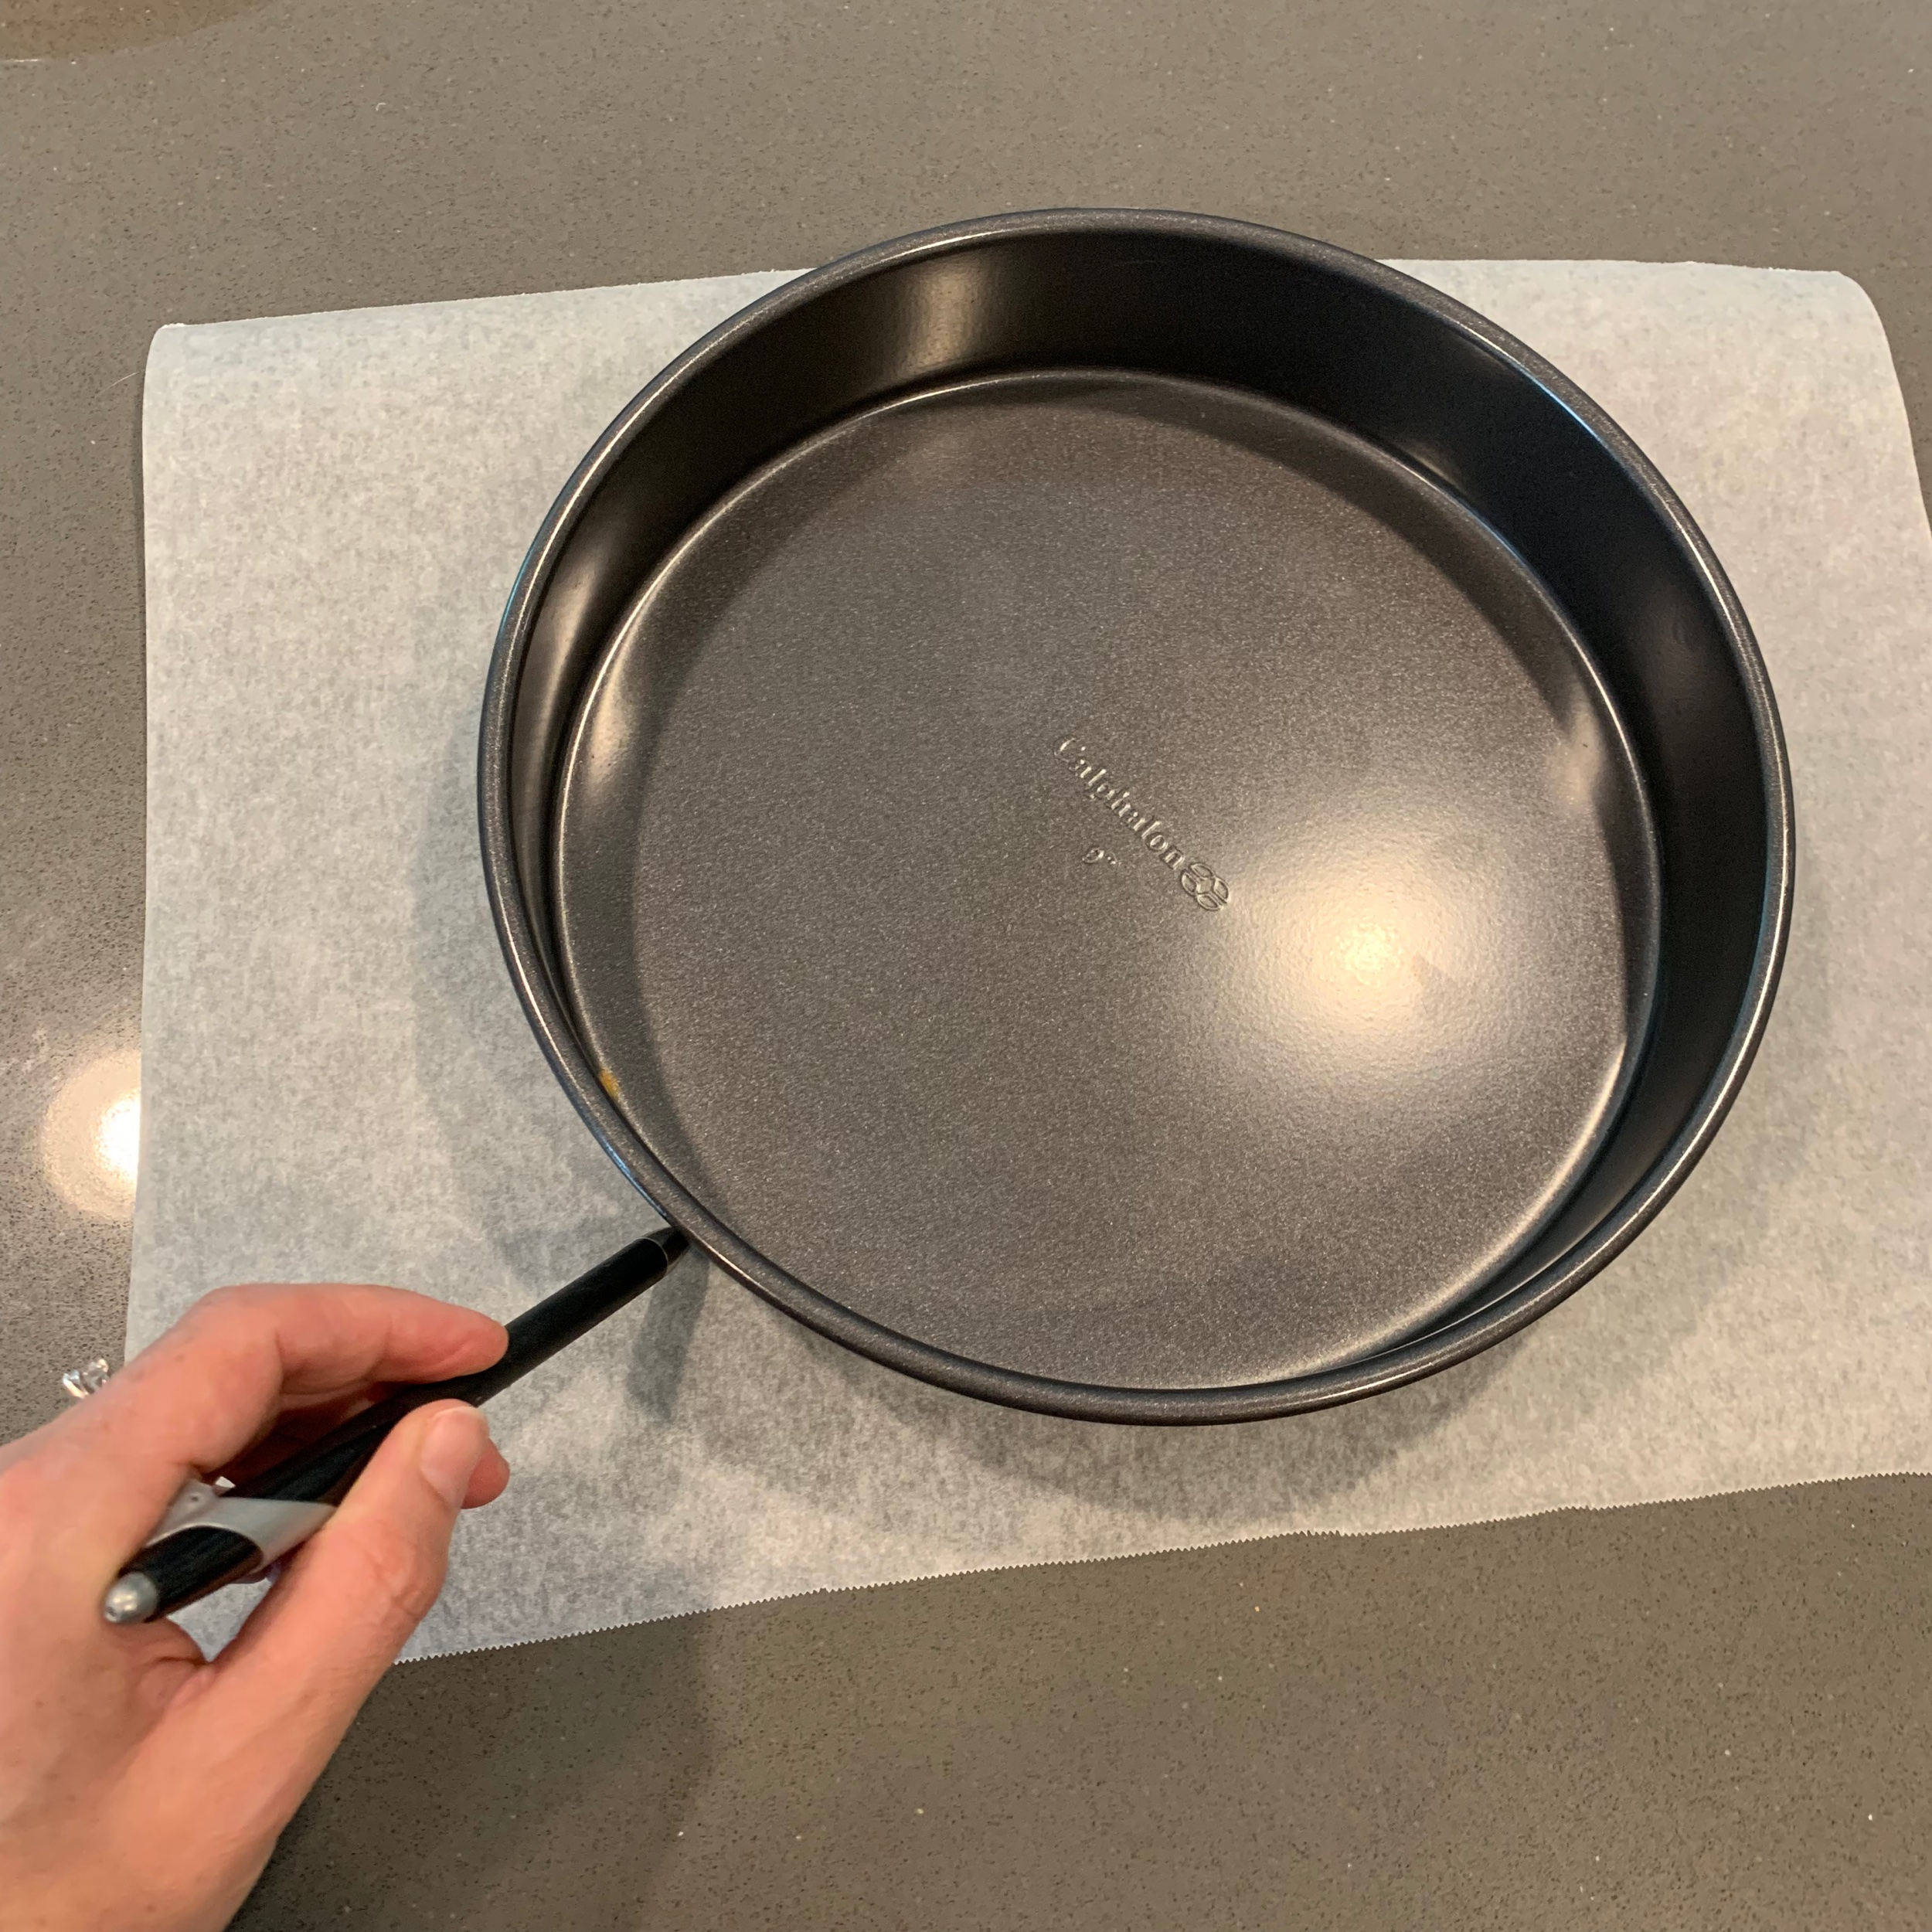 Trace your pan then cut out the template to fit snuggly inside the pan